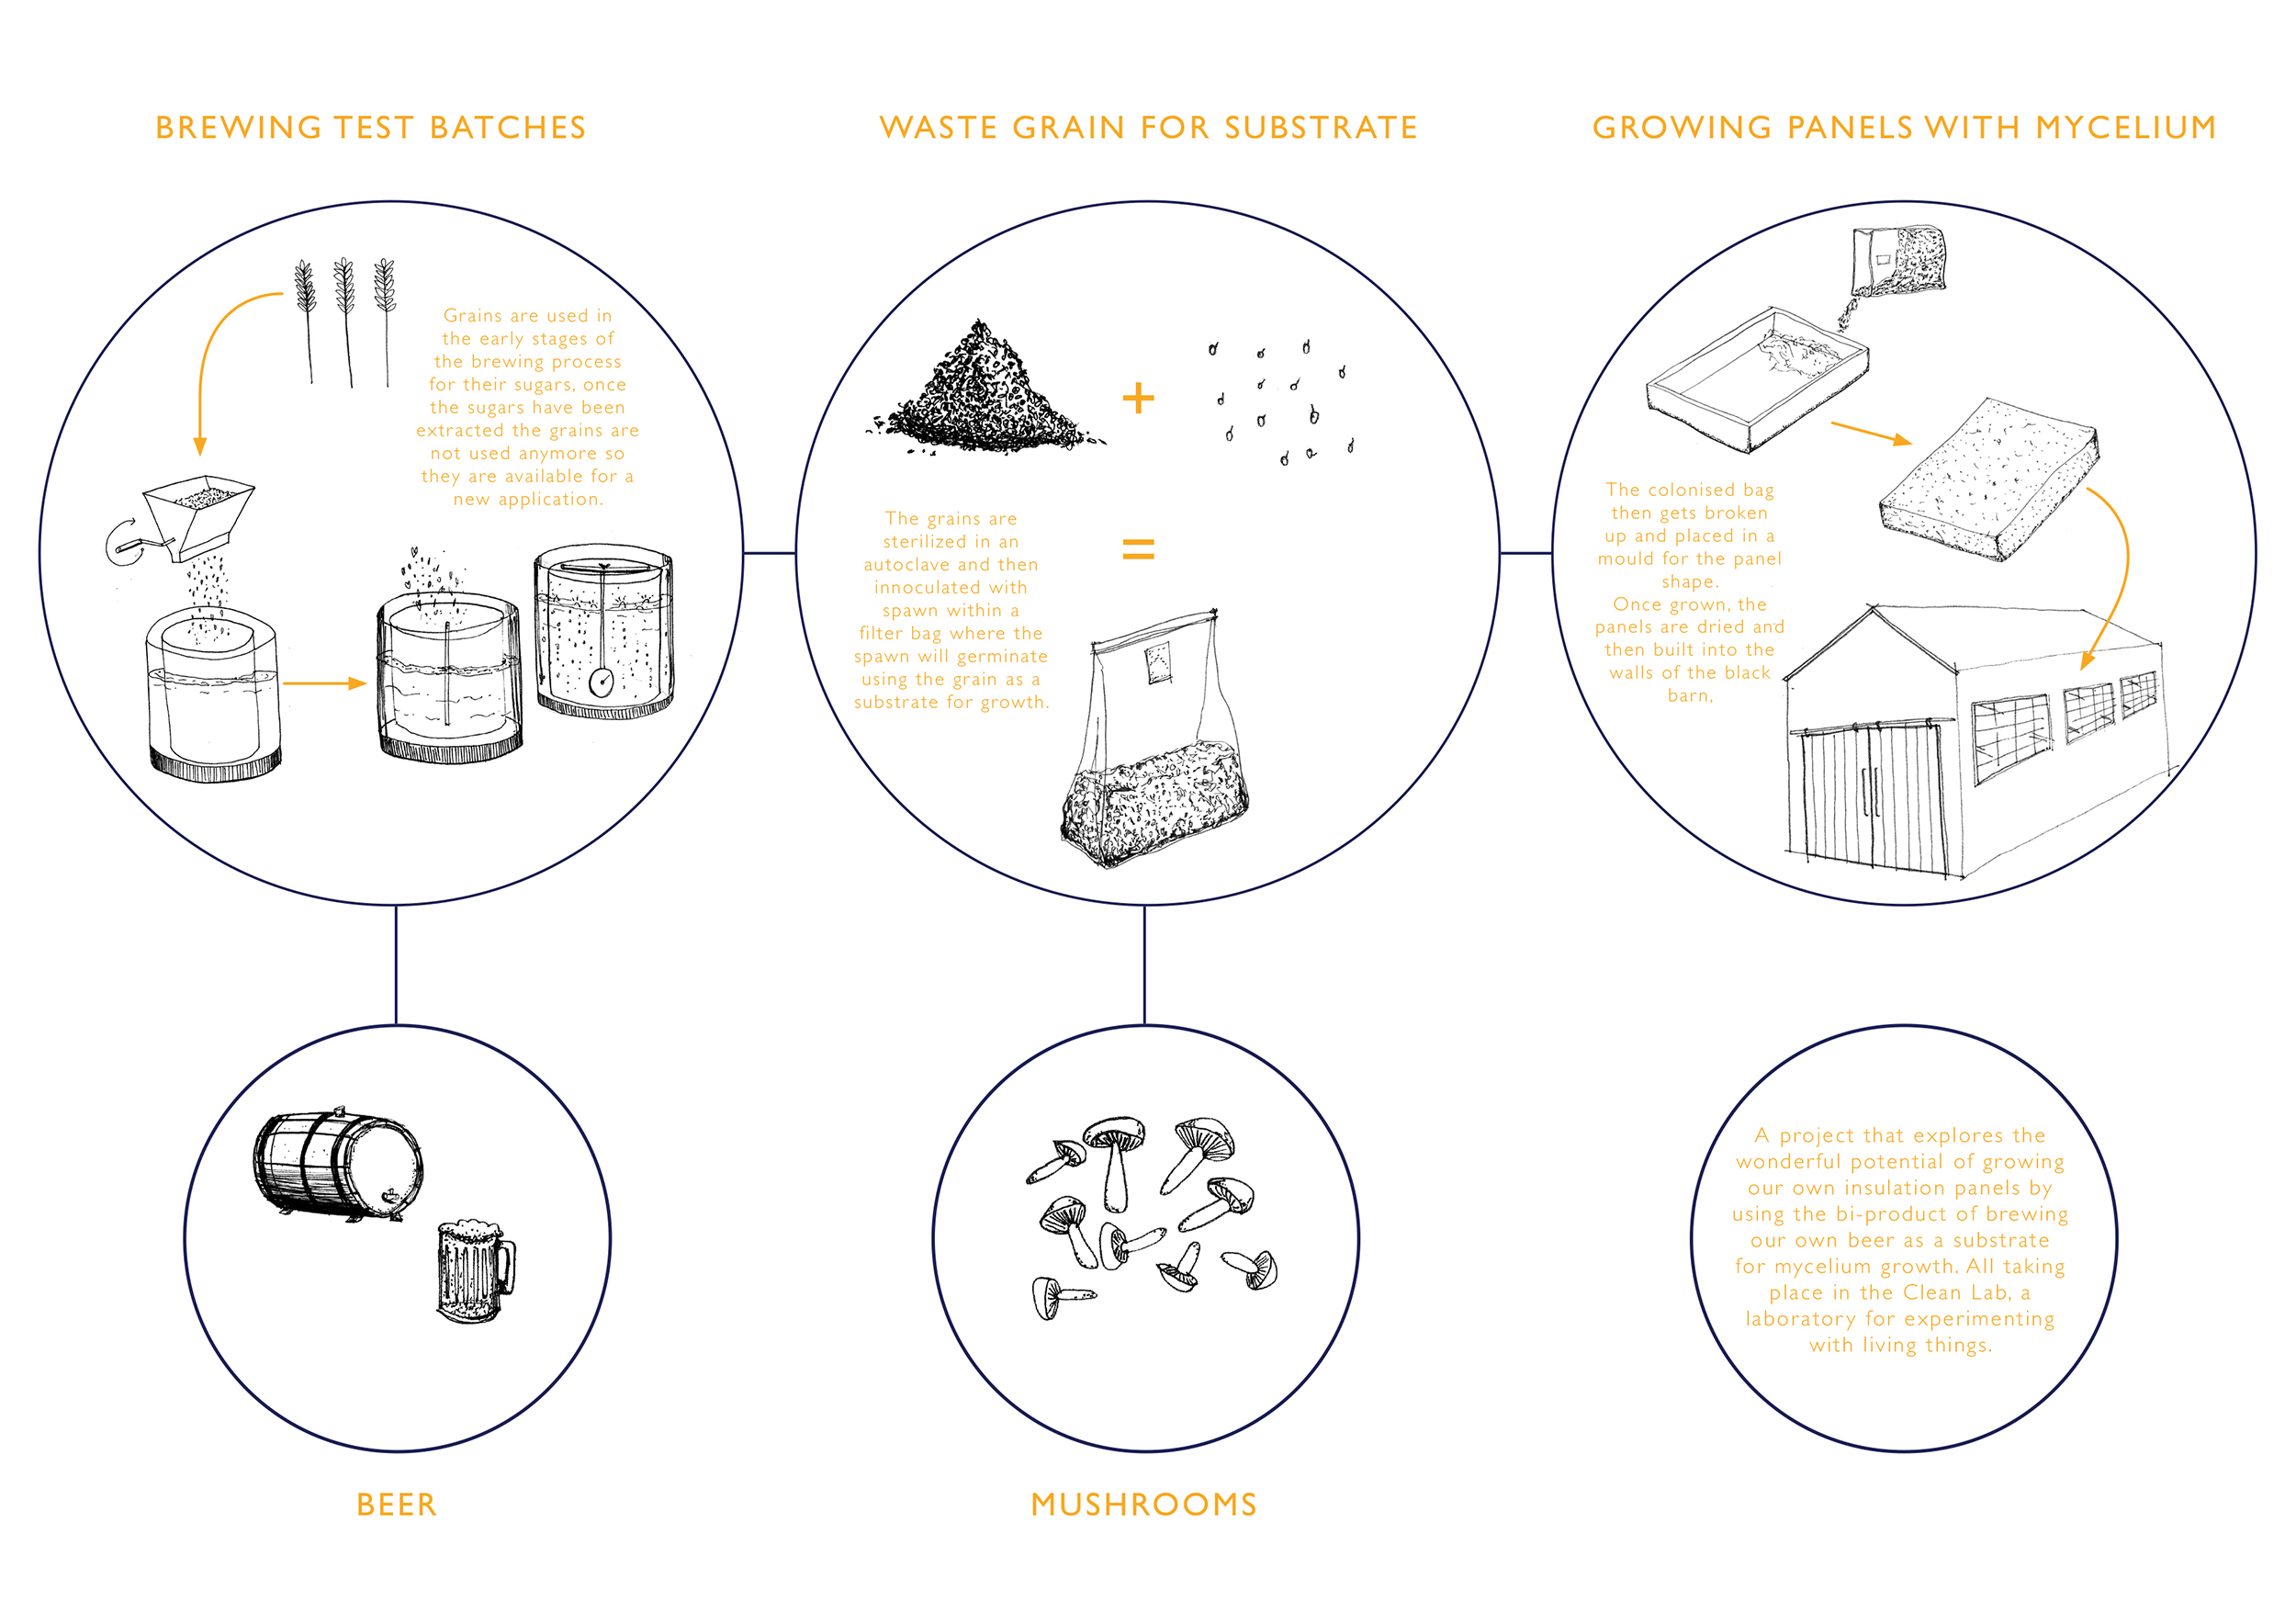 The inputs and outputs of combining two processes: brewing and growing mycelium